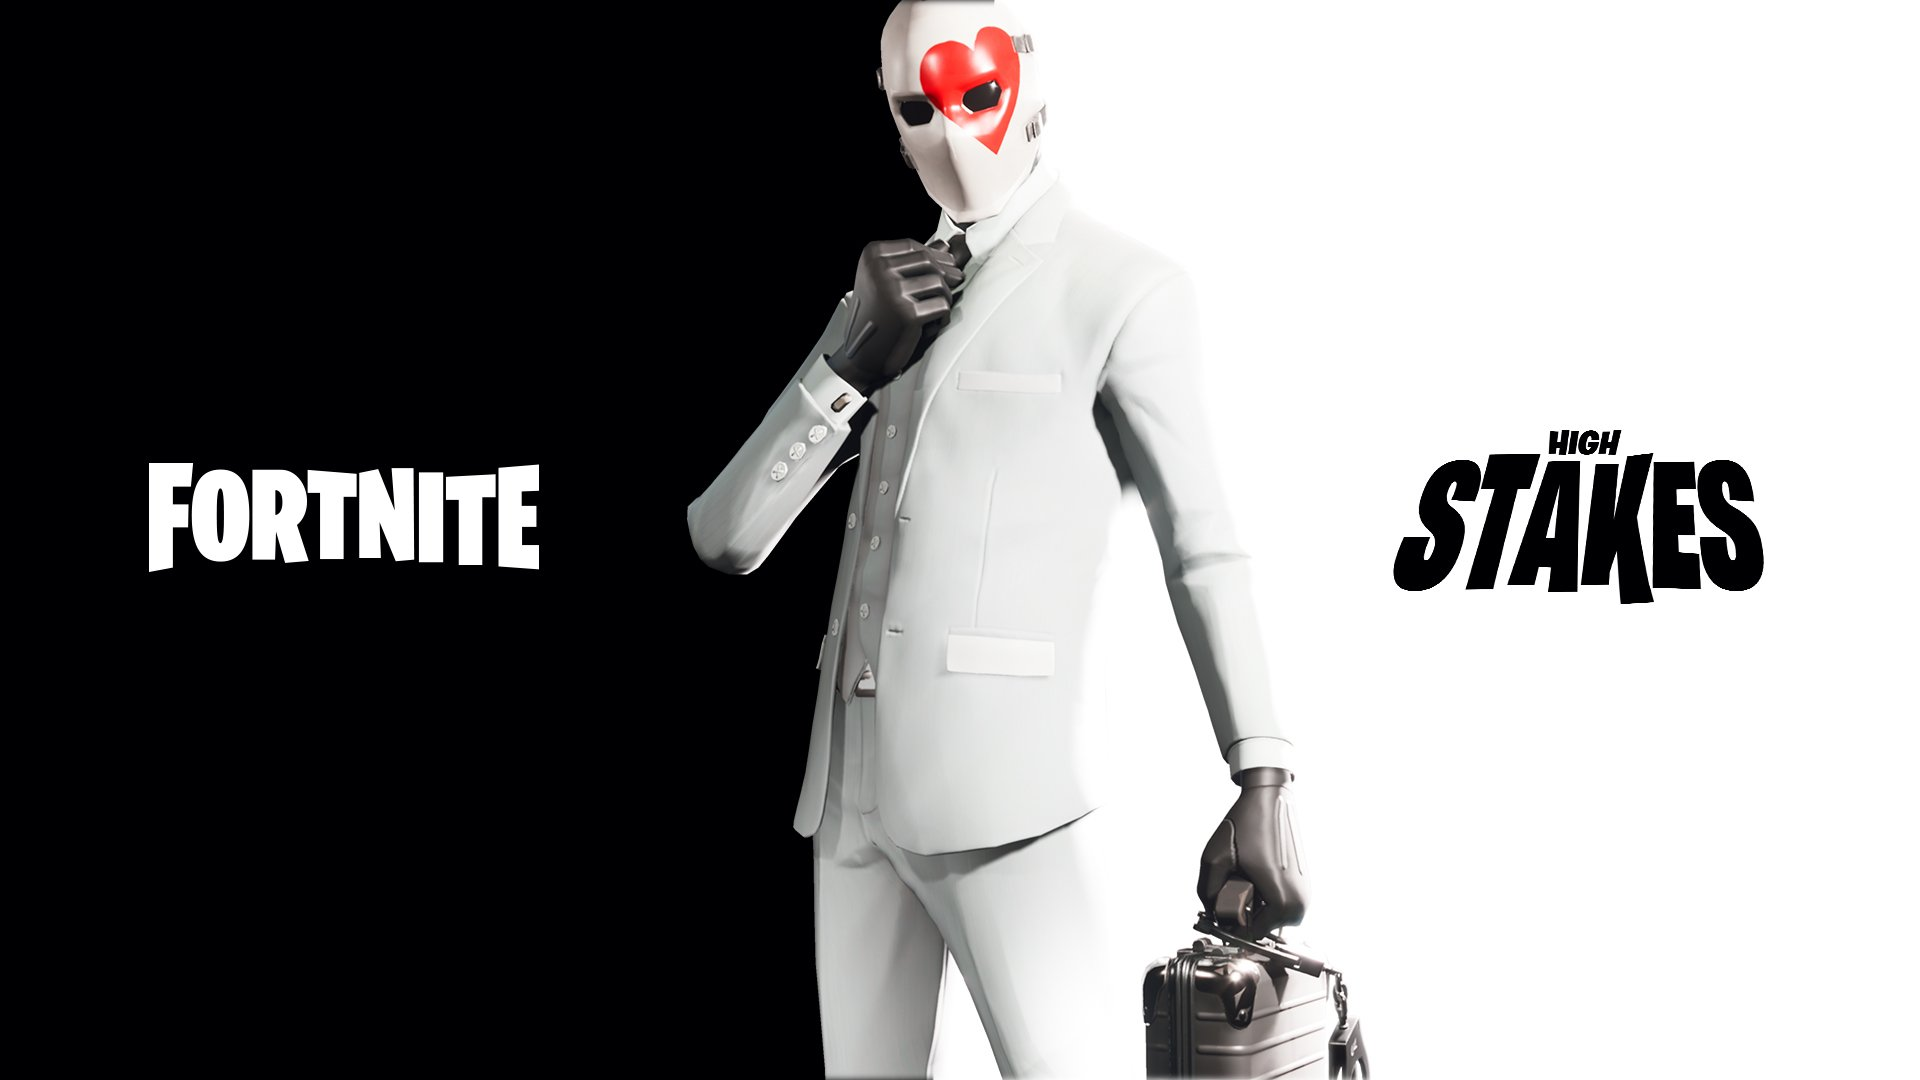 Fortnite_high_stakes_herausforderungen_Skin